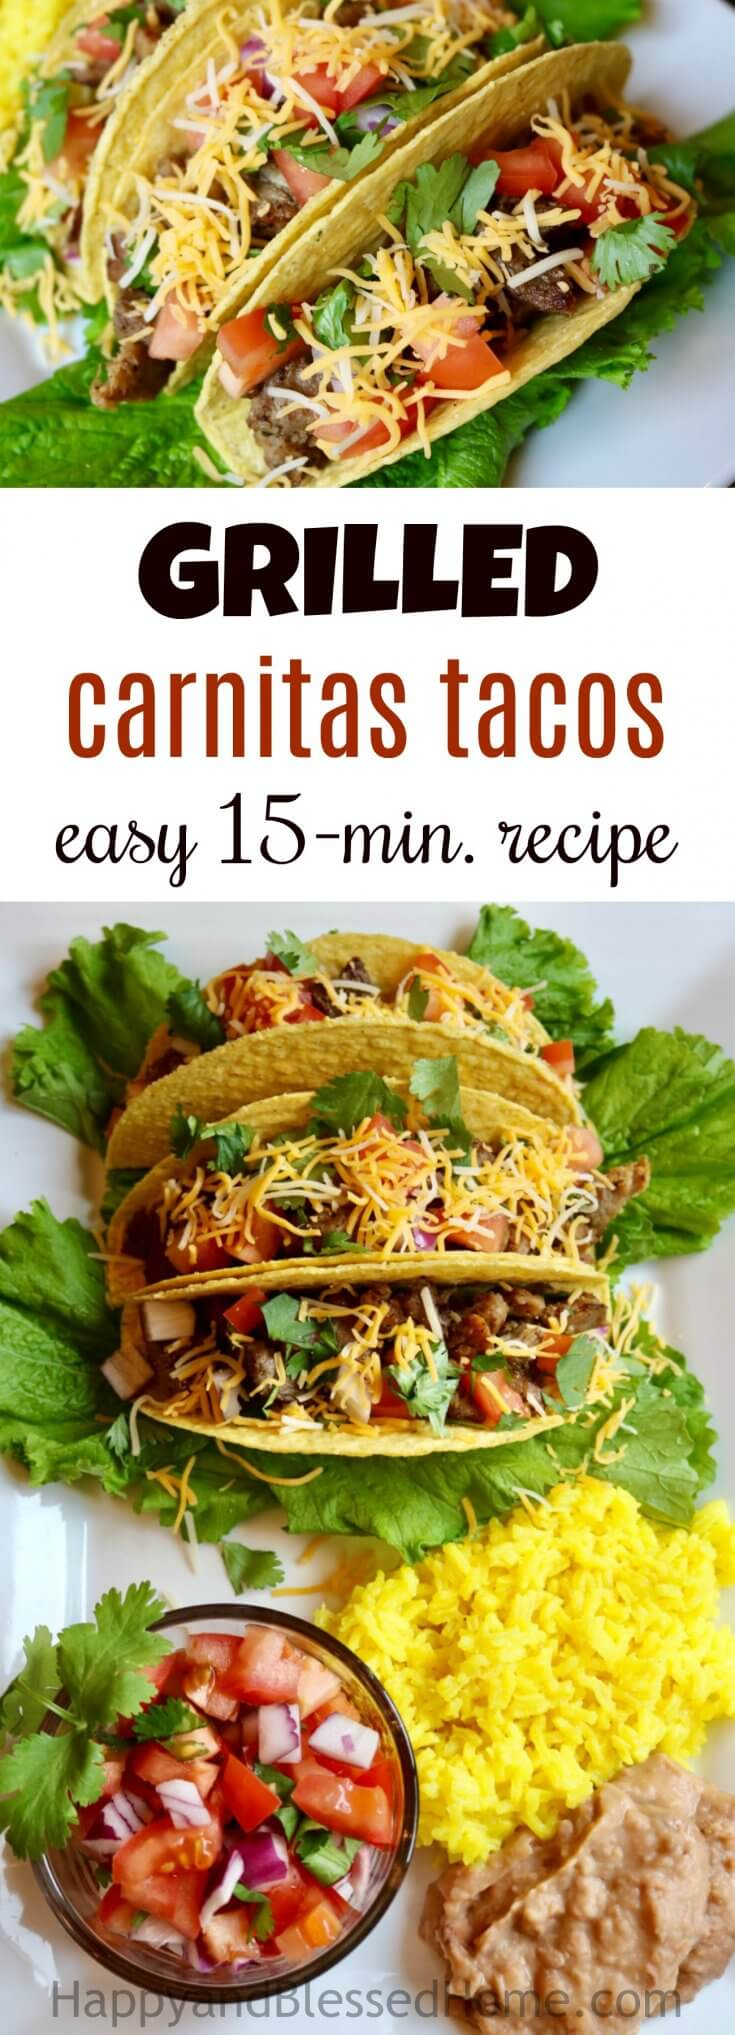 Grilled Carnitas Tacos - easy 15 minute recipe for a tasty Mexican dinner